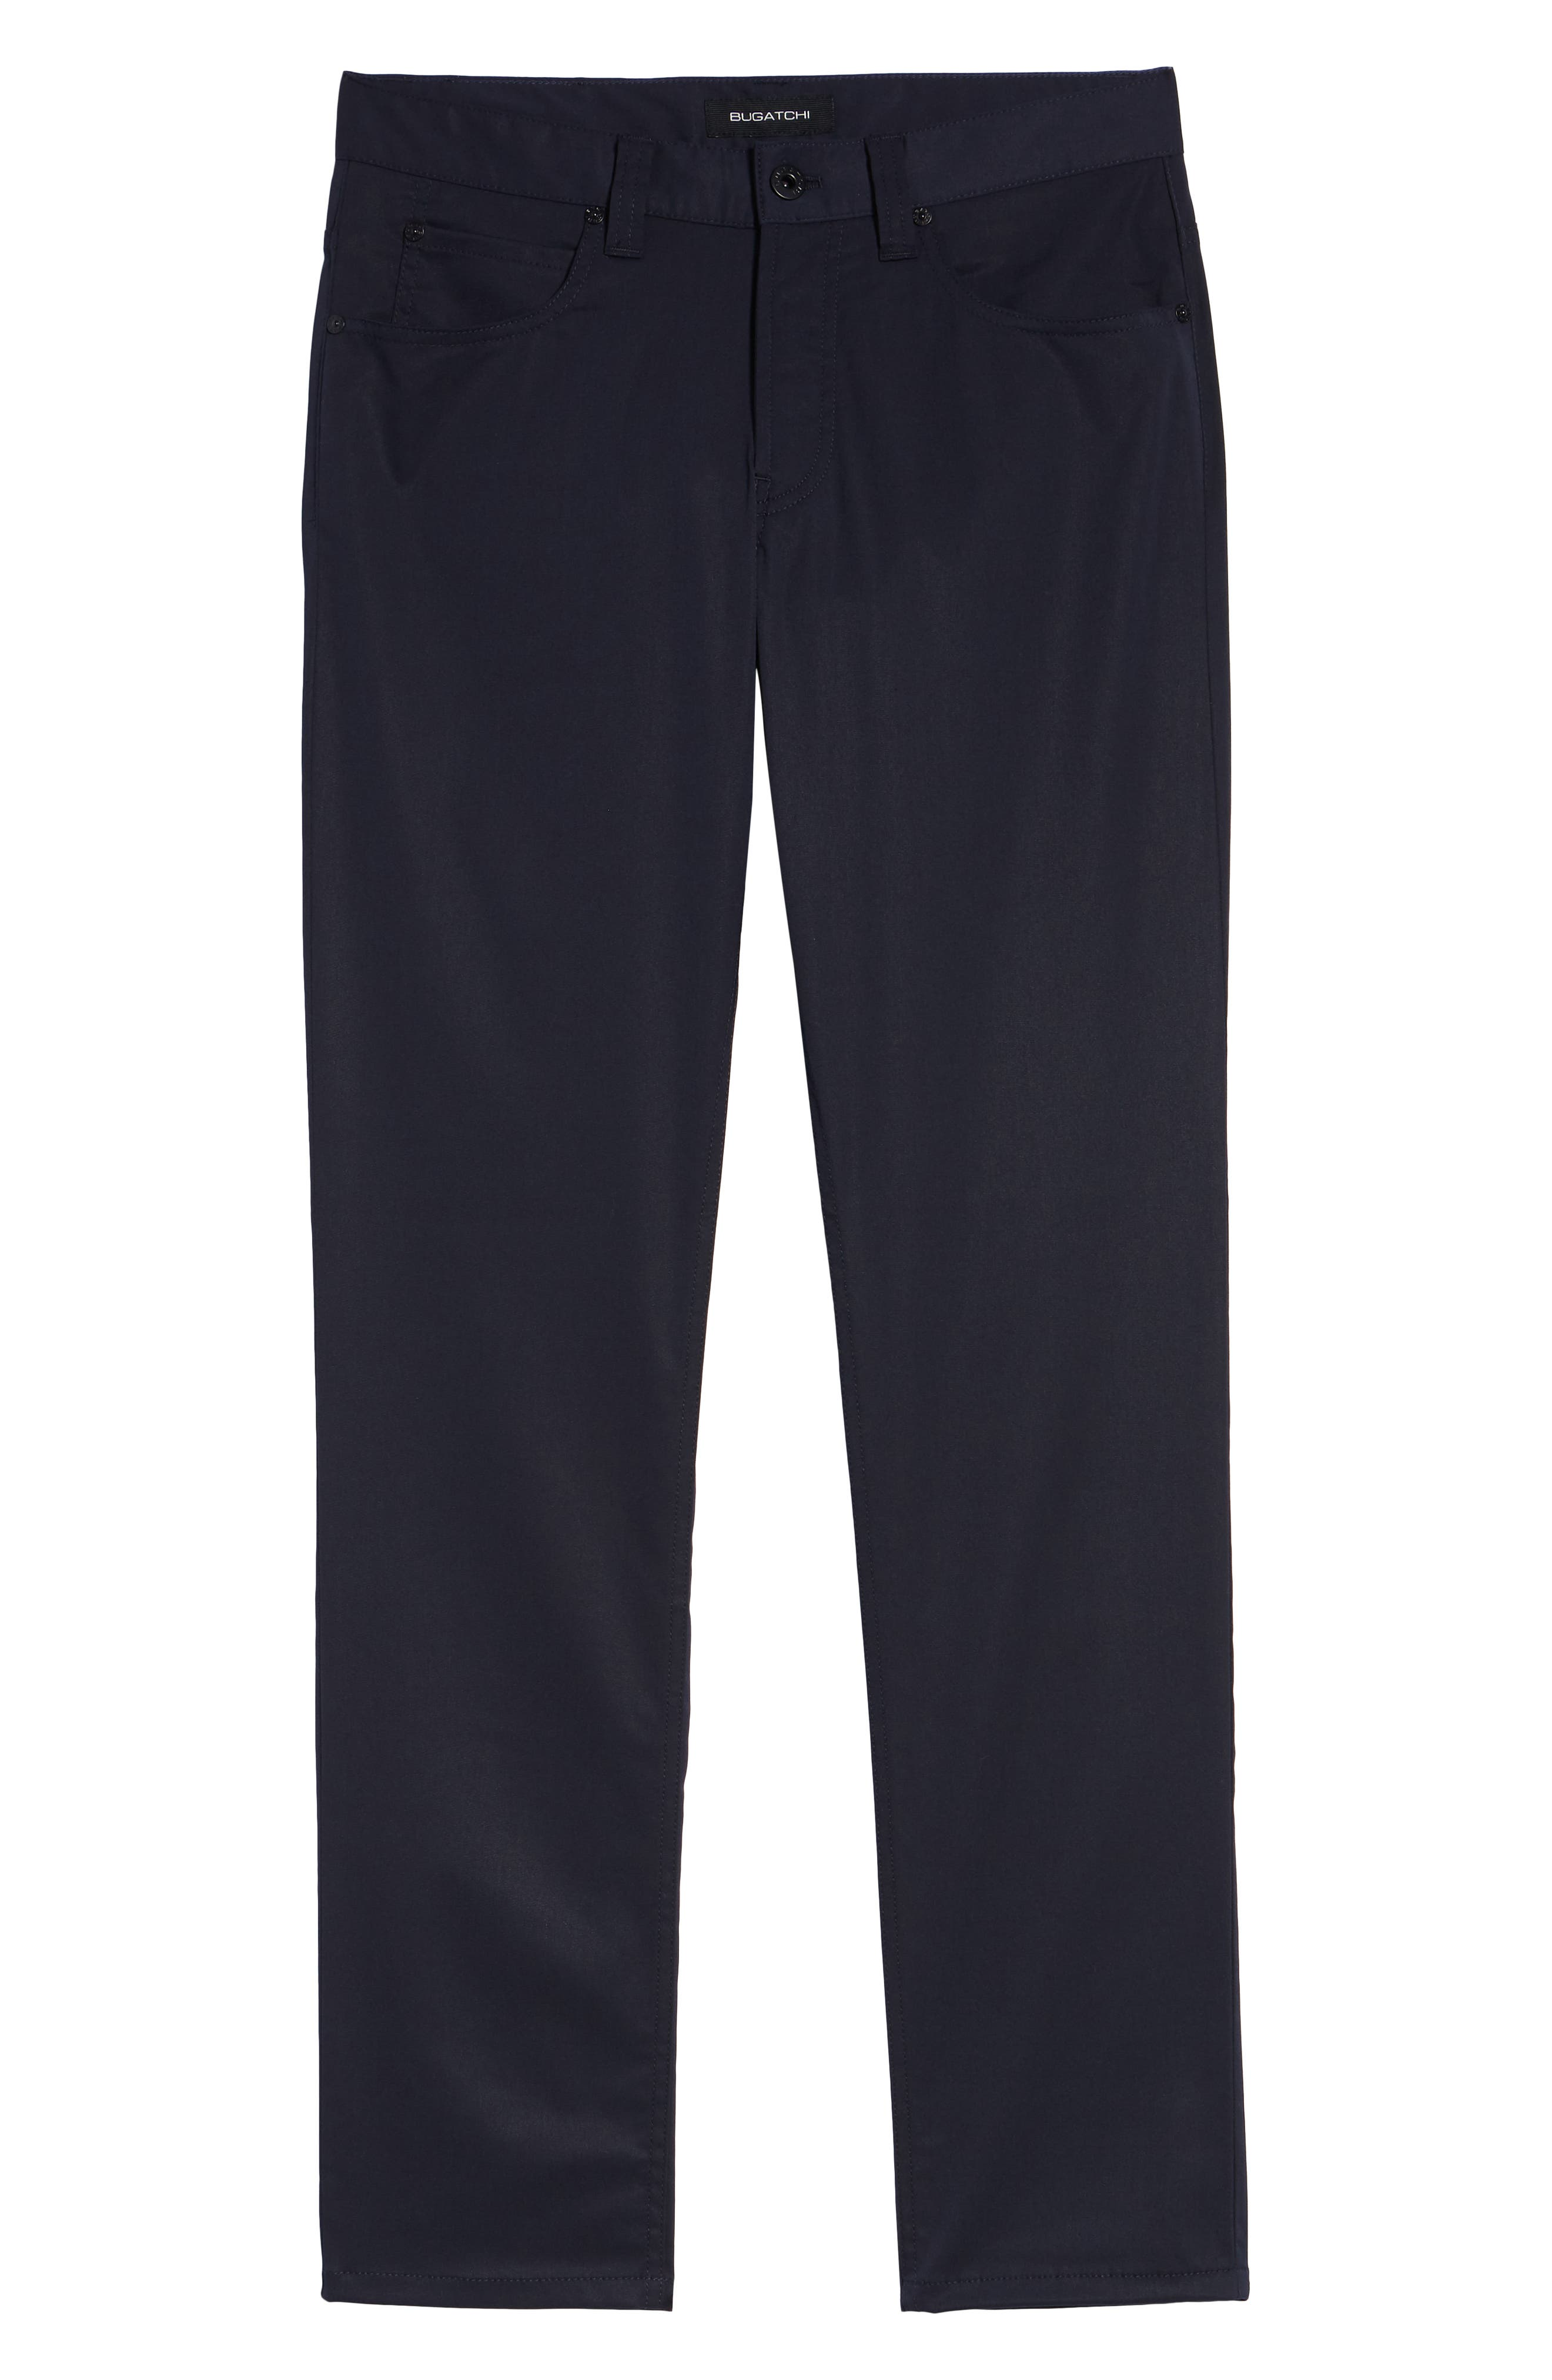 Flat Front Pants,                             Alternate thumbnail 6, color,                             MIDNIGHT